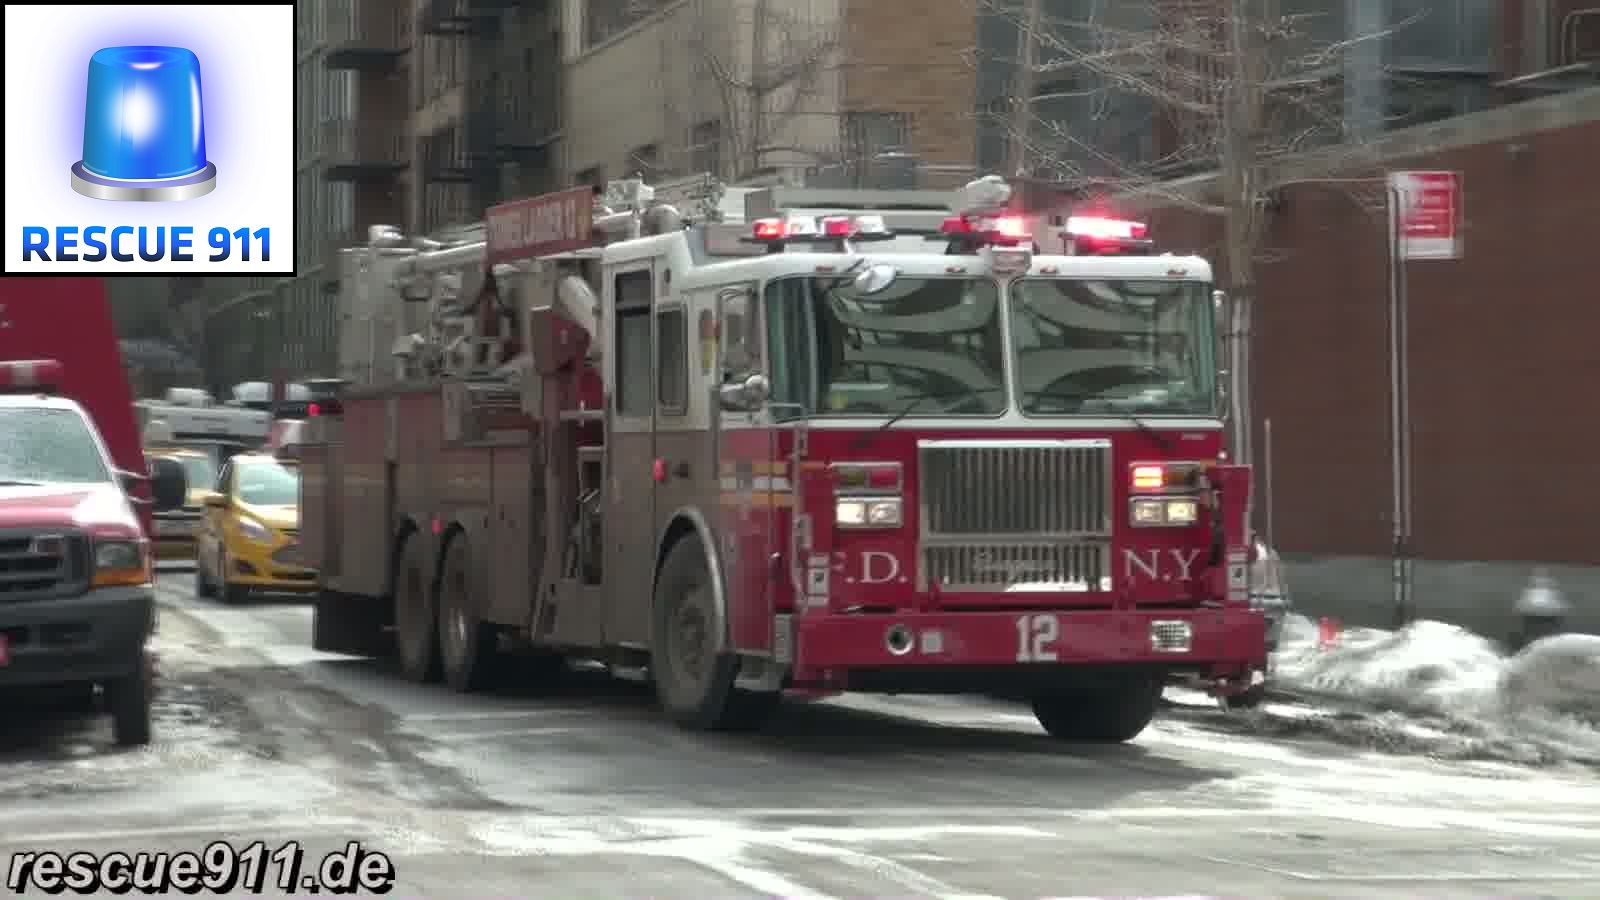 Tower Ladder 12 FDNY (stream)